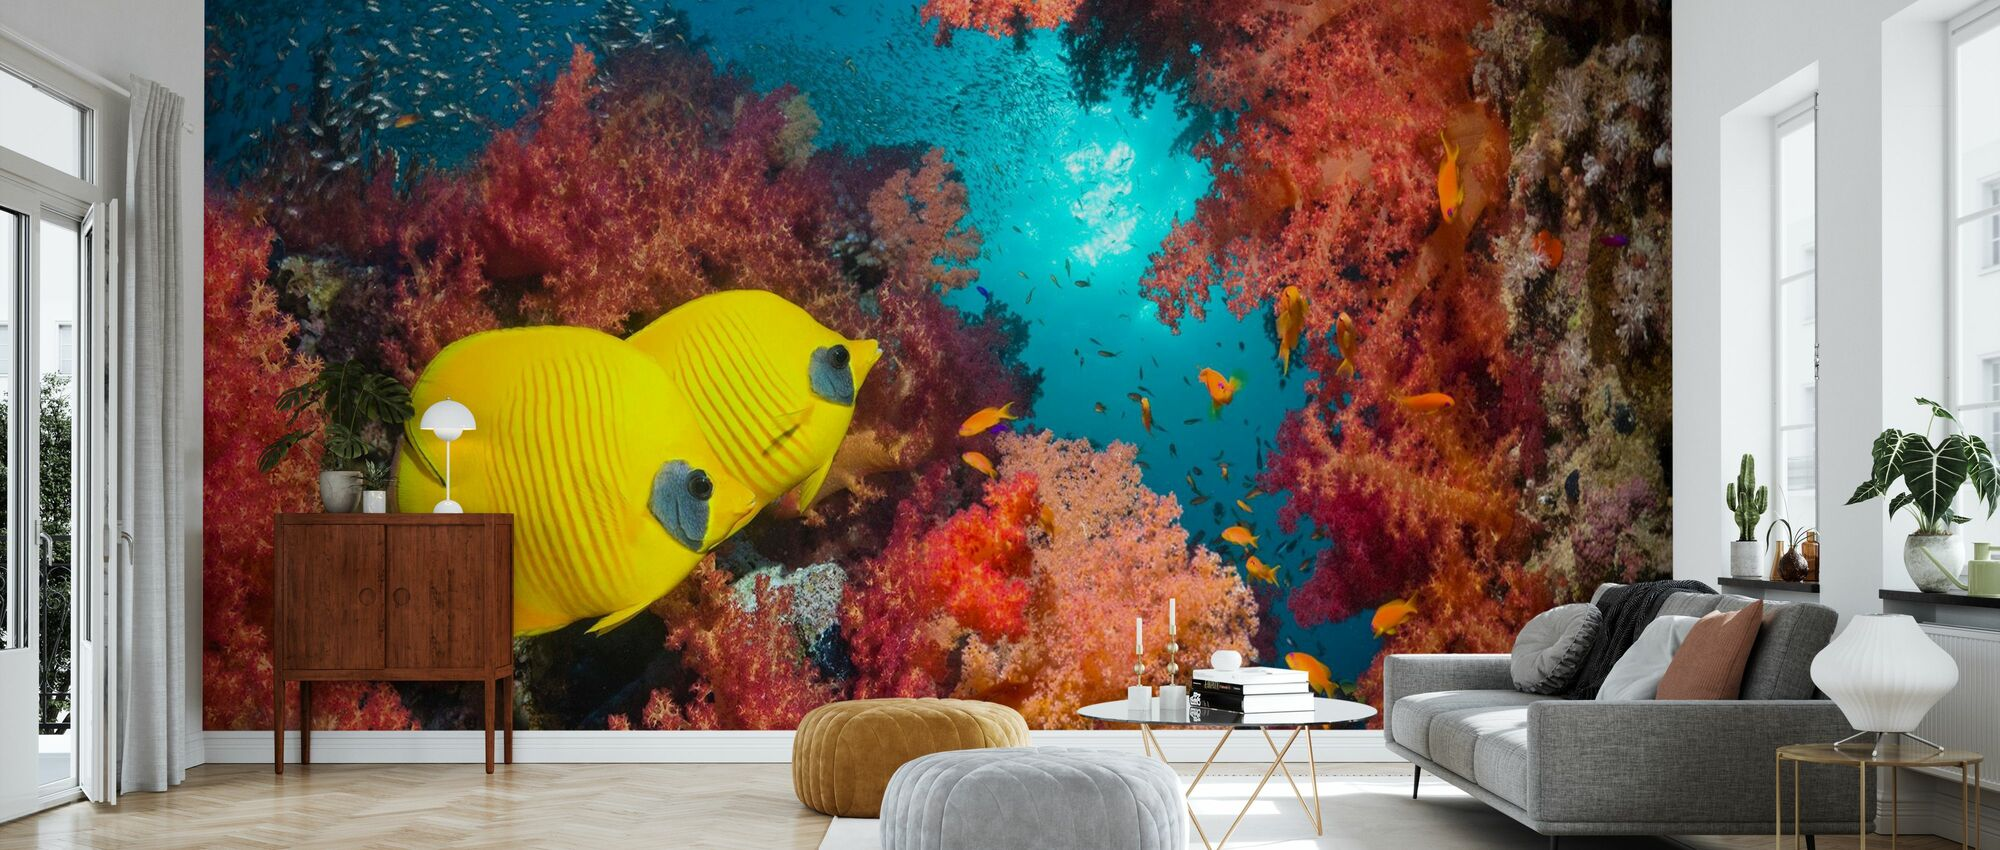 Butterfly Fish and Red Corals - Wallpaper - Living Room